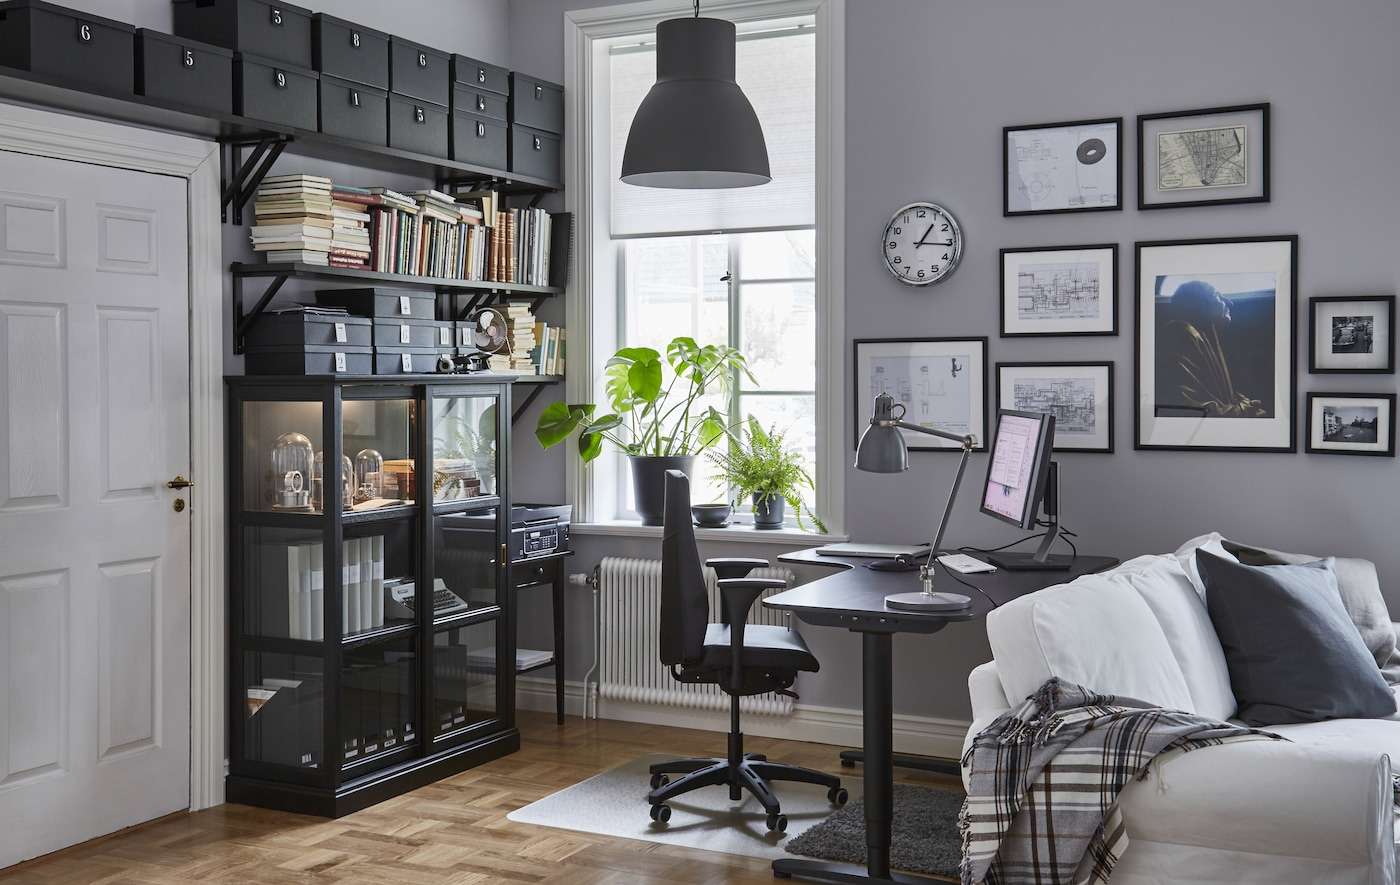 Setting up an ergonomic office space cuts down on work fatigue.